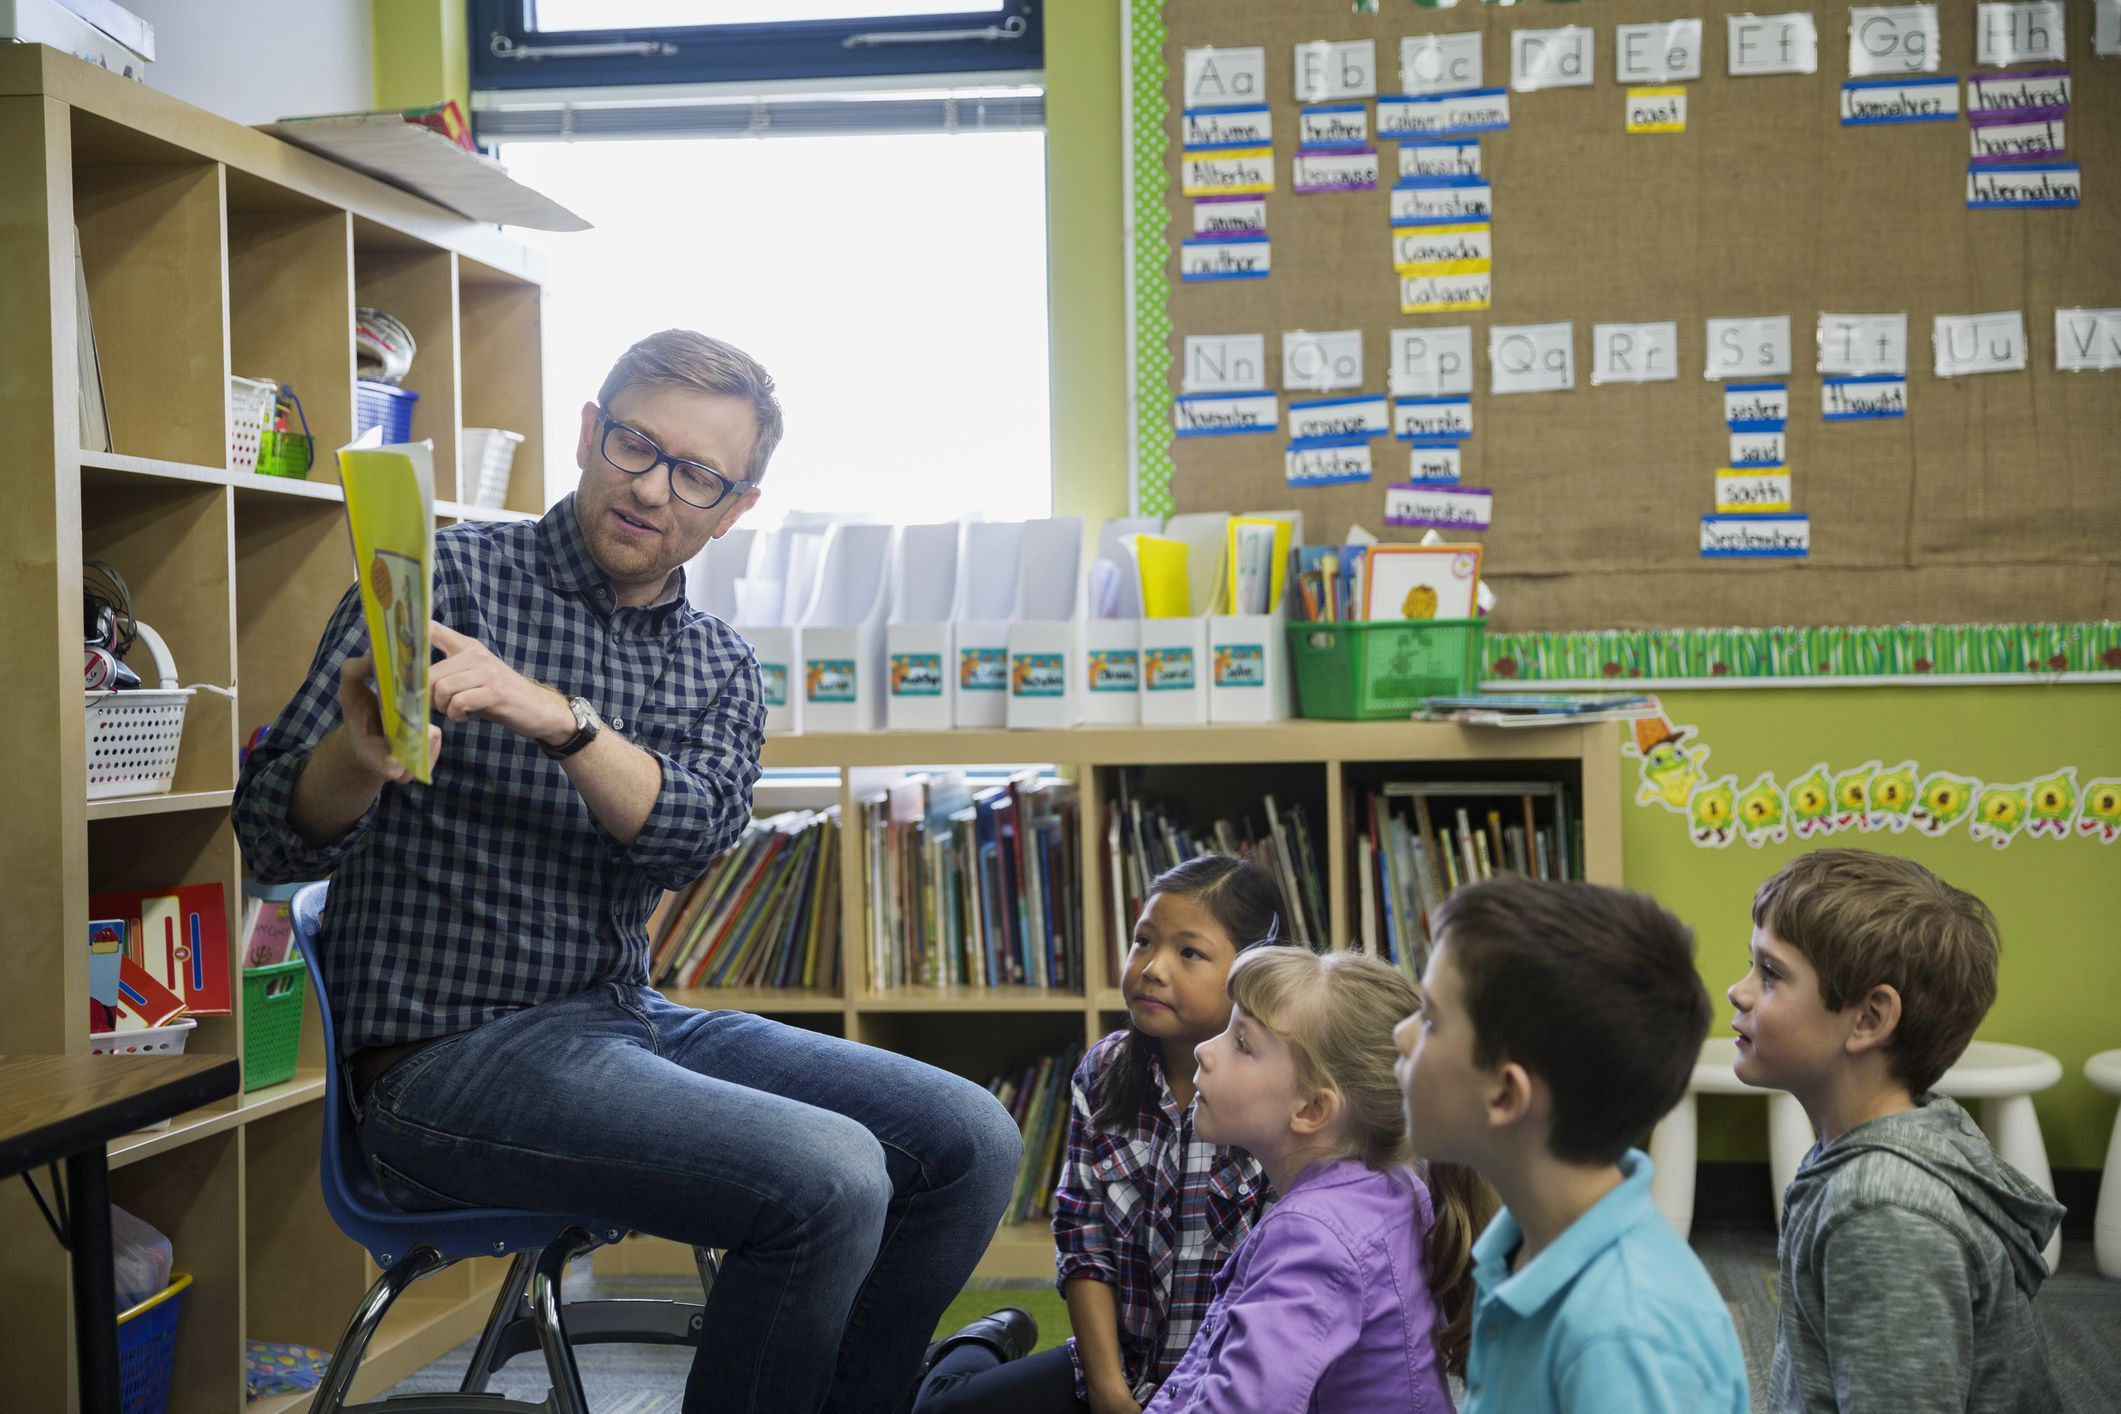 Why Instruction Methods Should Be Tailored to Each Student   Teach for america, Jobs for ...